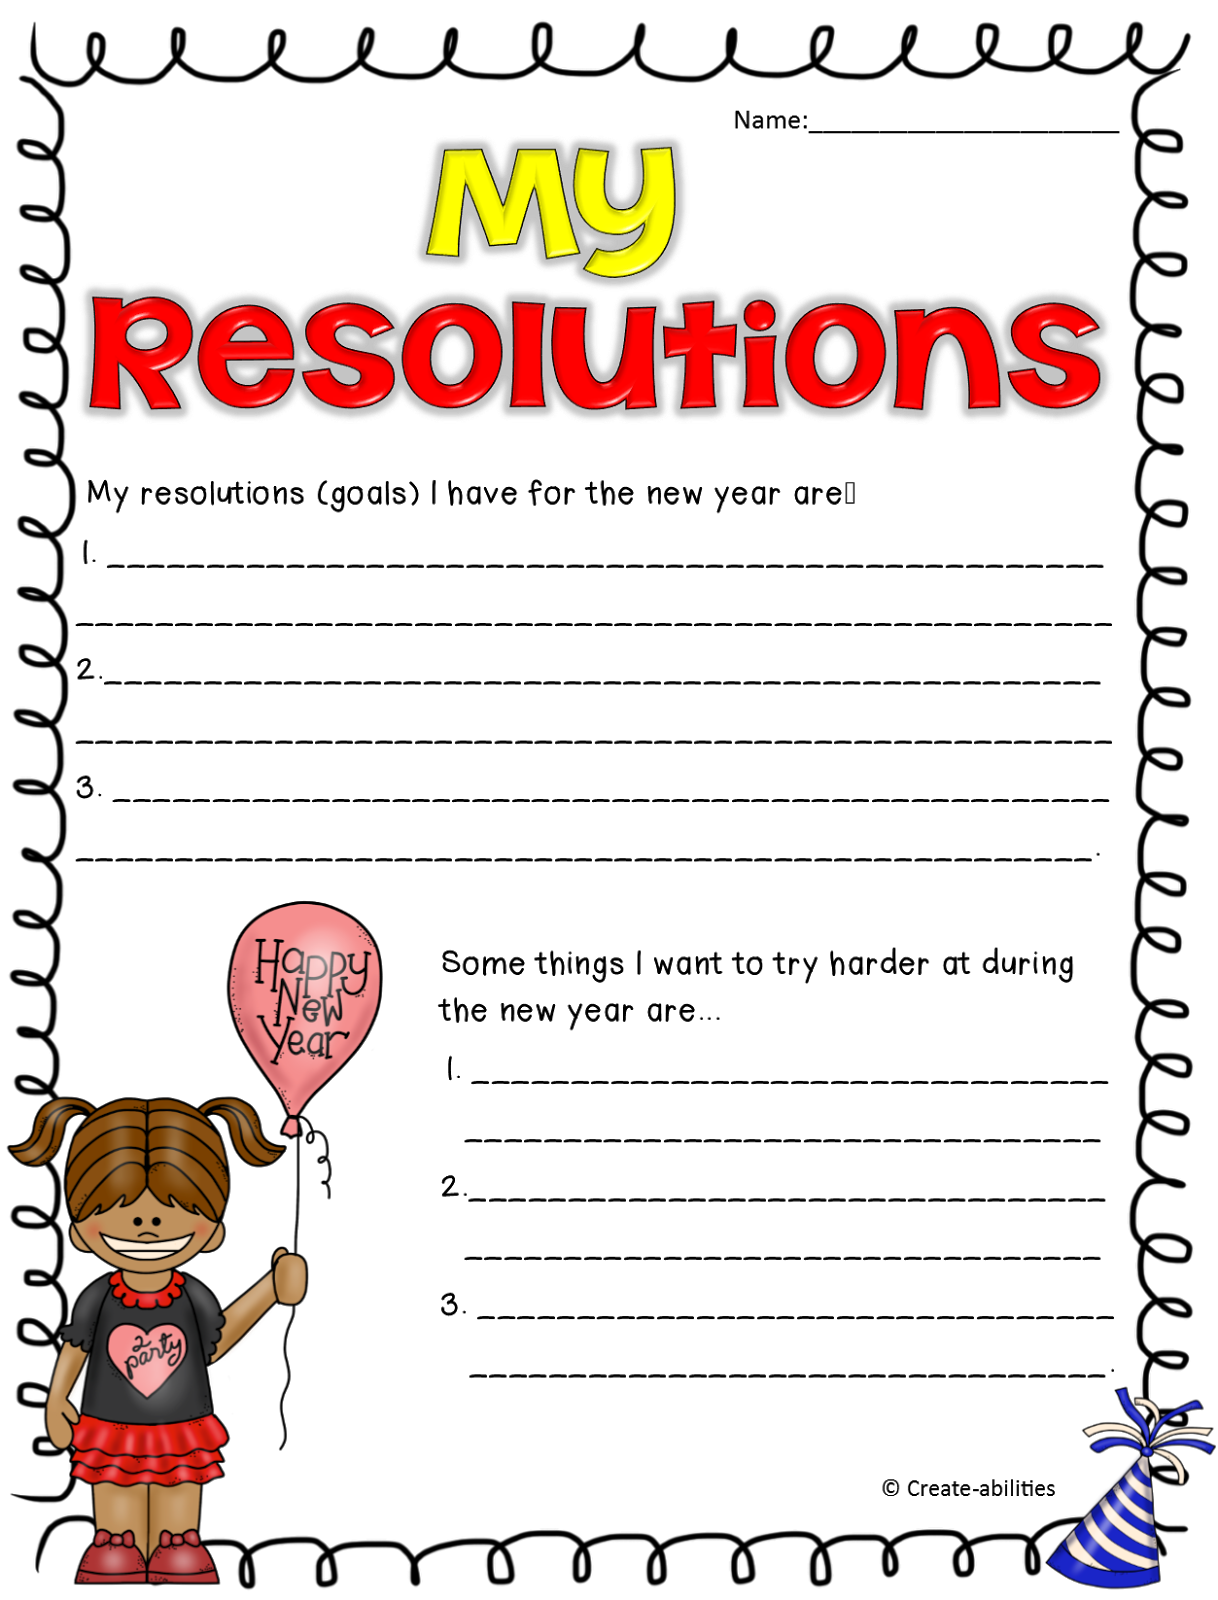 ... resolutions! You can also download the freebie from Google Docs here